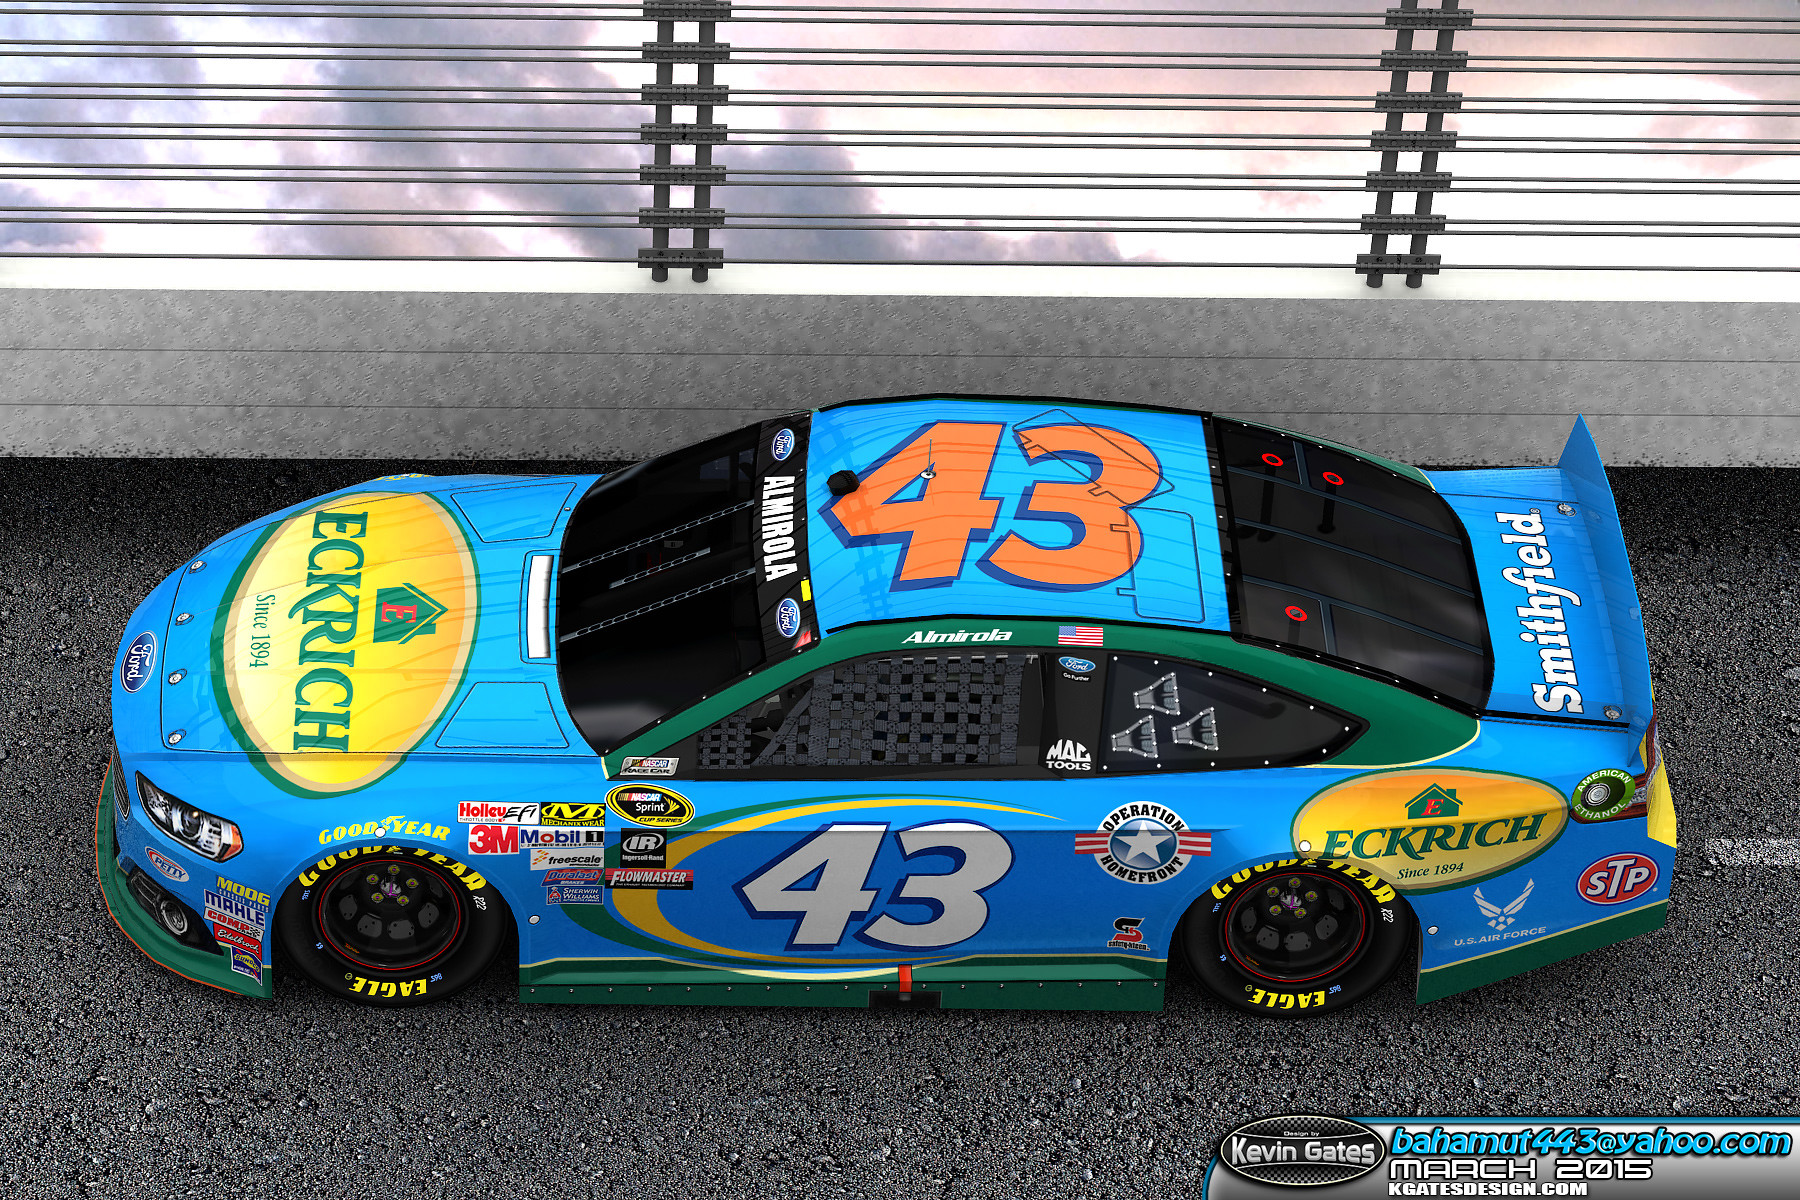 Autodesk 3DS Max render provided to Smithfield Foods depicting the 2015 #43 Eckrich paint scheme on track